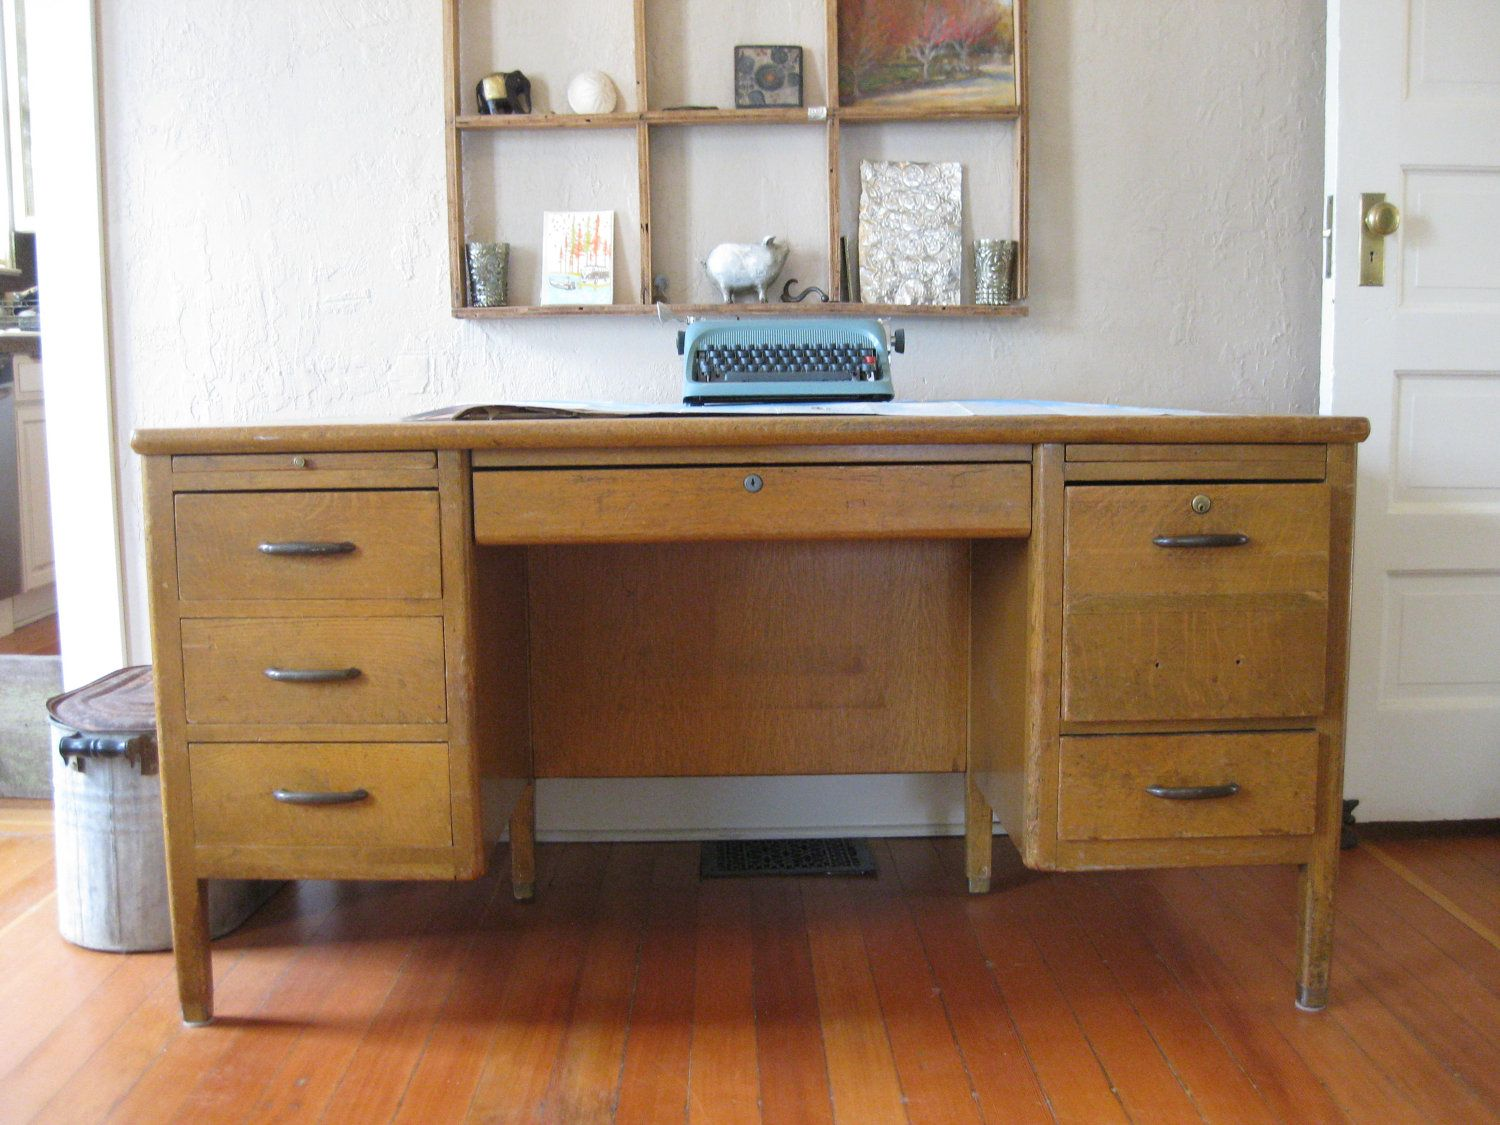 I really want one of these old fashioned teacher desks. - Vintage Wood Desk - Google Search Front Room Pinterest Vintage